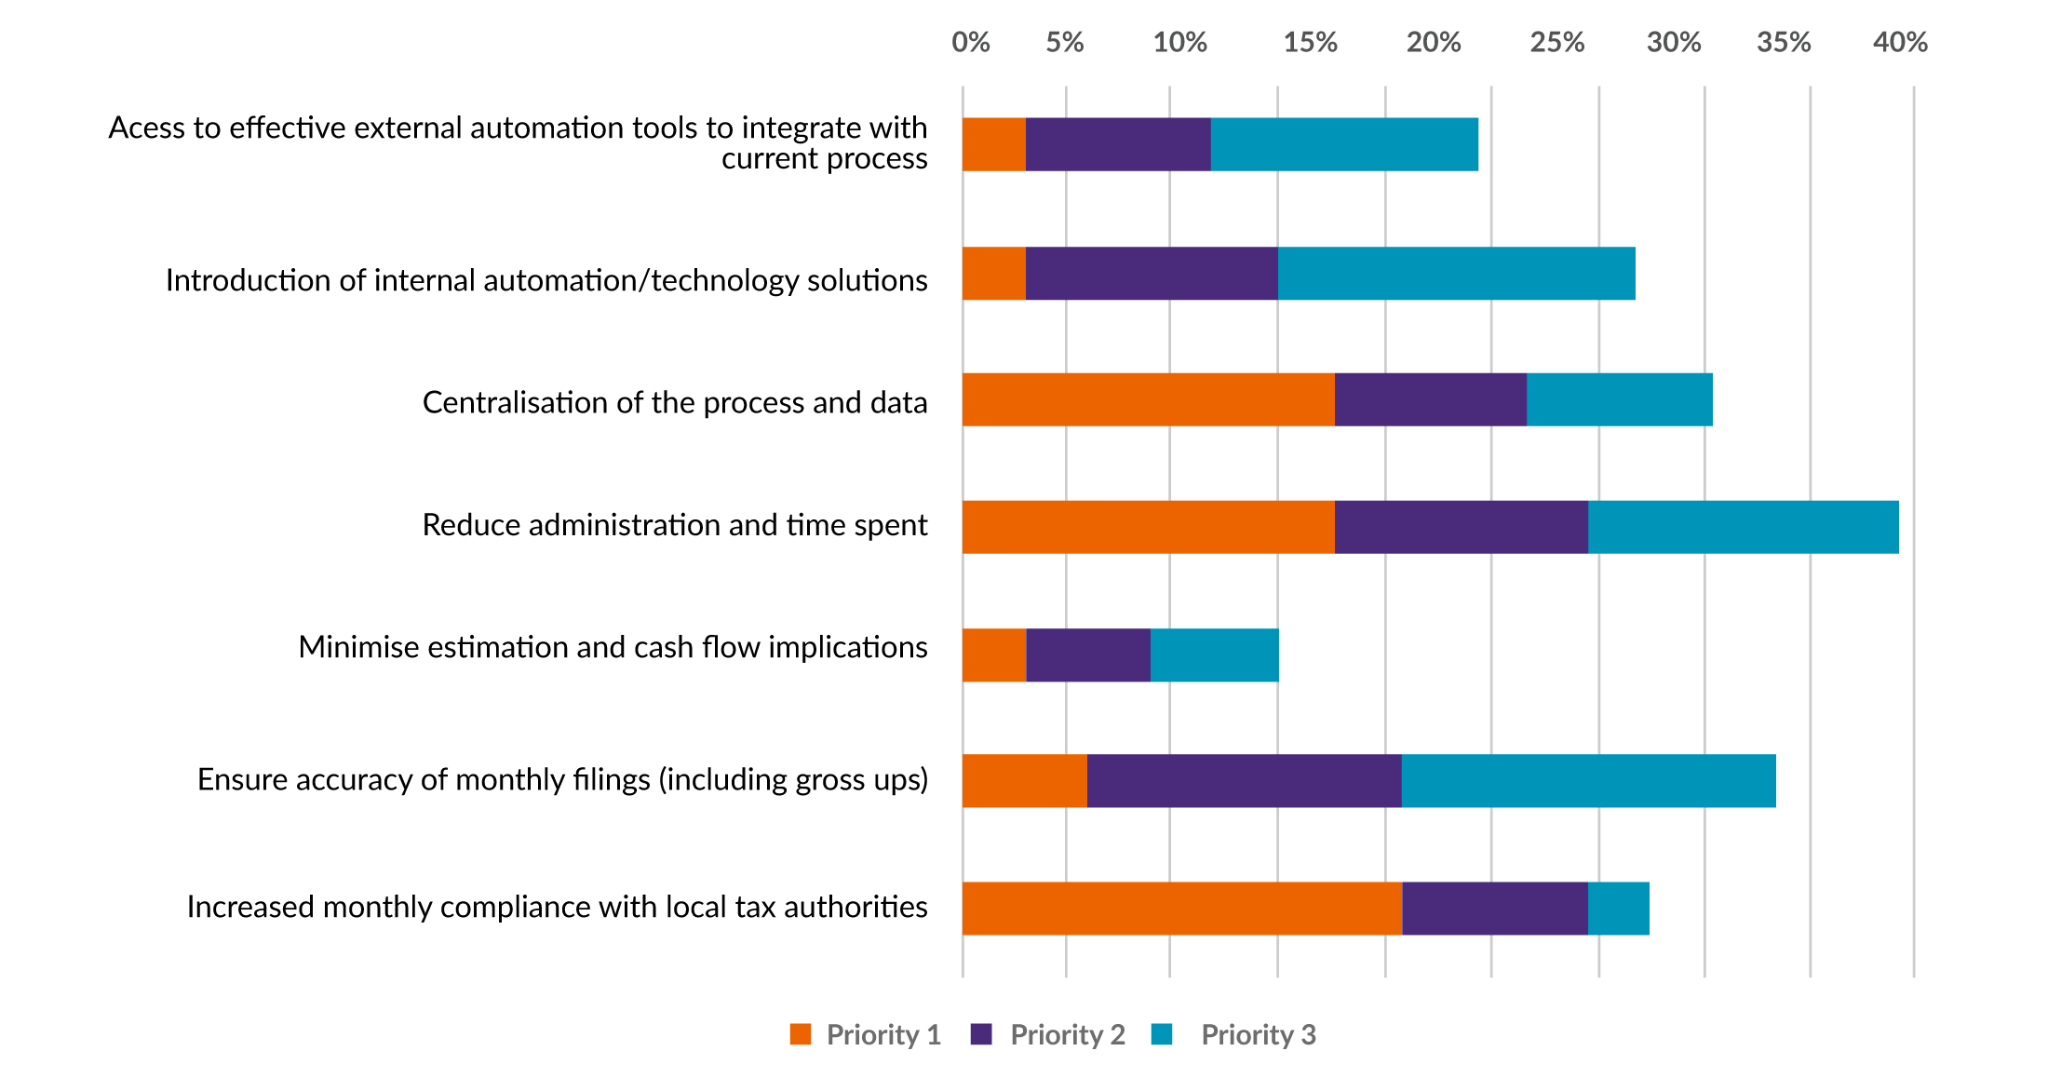 Shadow Payroll Priorities in the next 12-24 Months Bar Chart